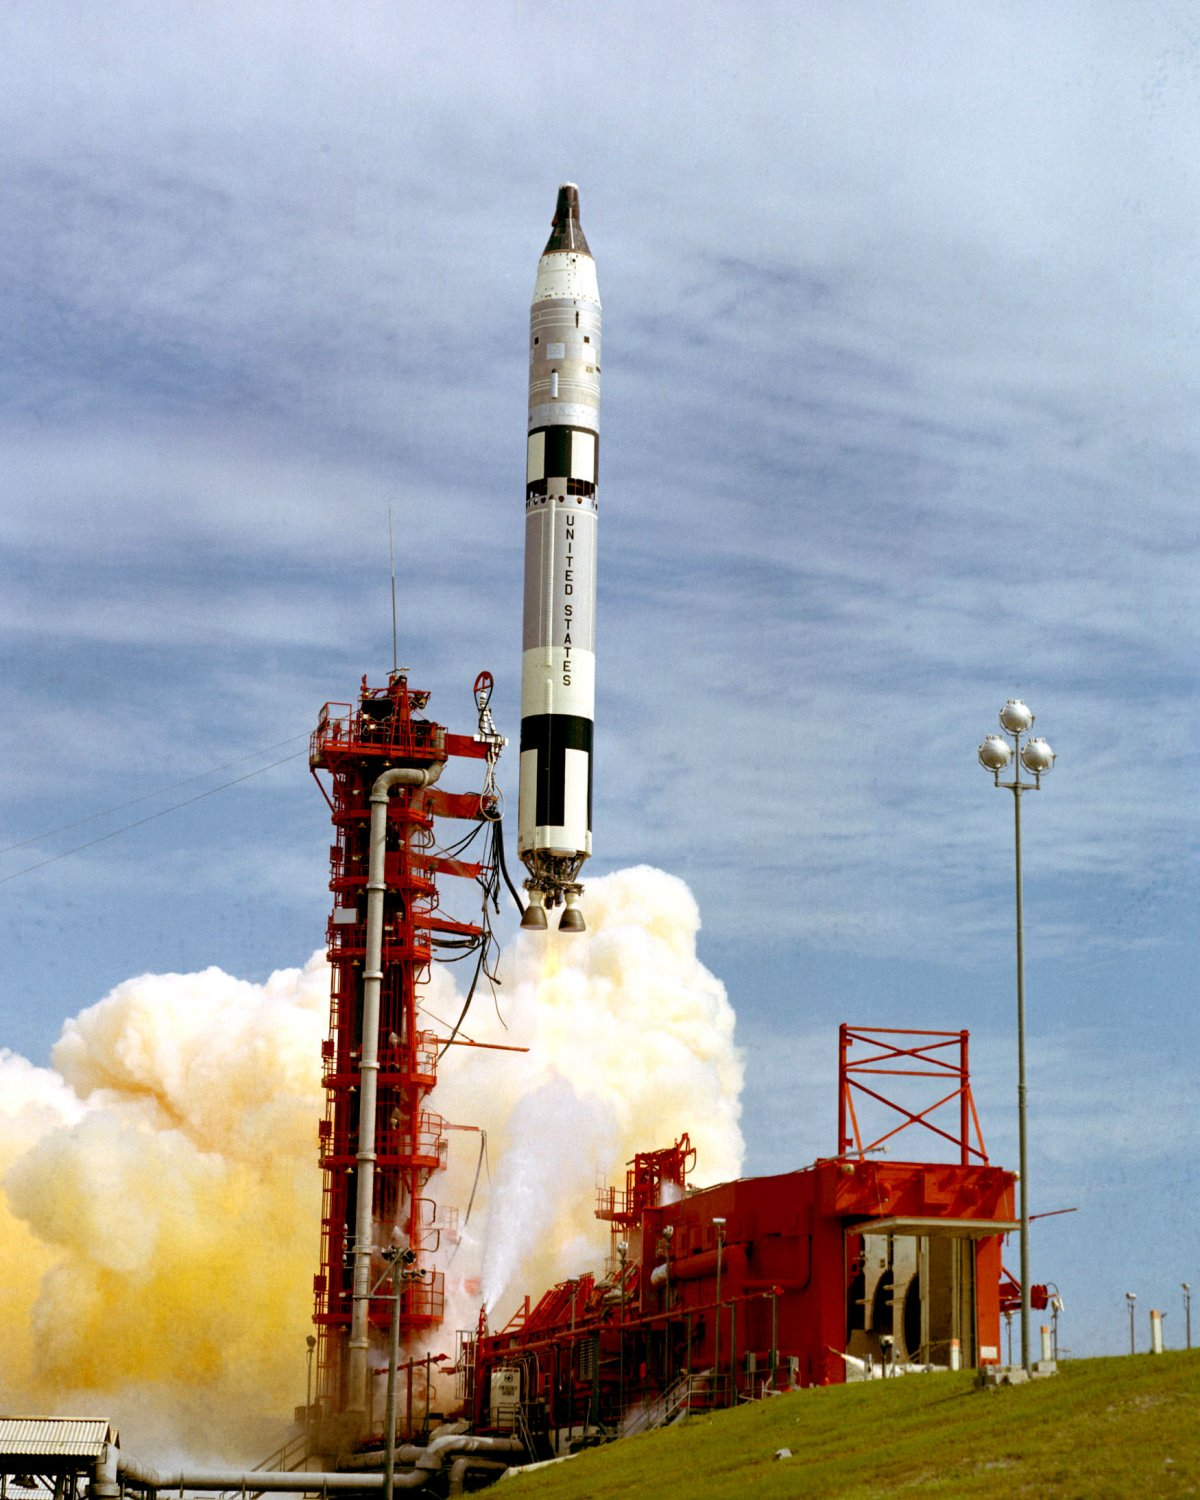 GEMINI 11 SPACECRAFT LIFT-OFF FROM LAUNCH COMPLEX 19 - 8X10 NASA PHOTO (BB-882)